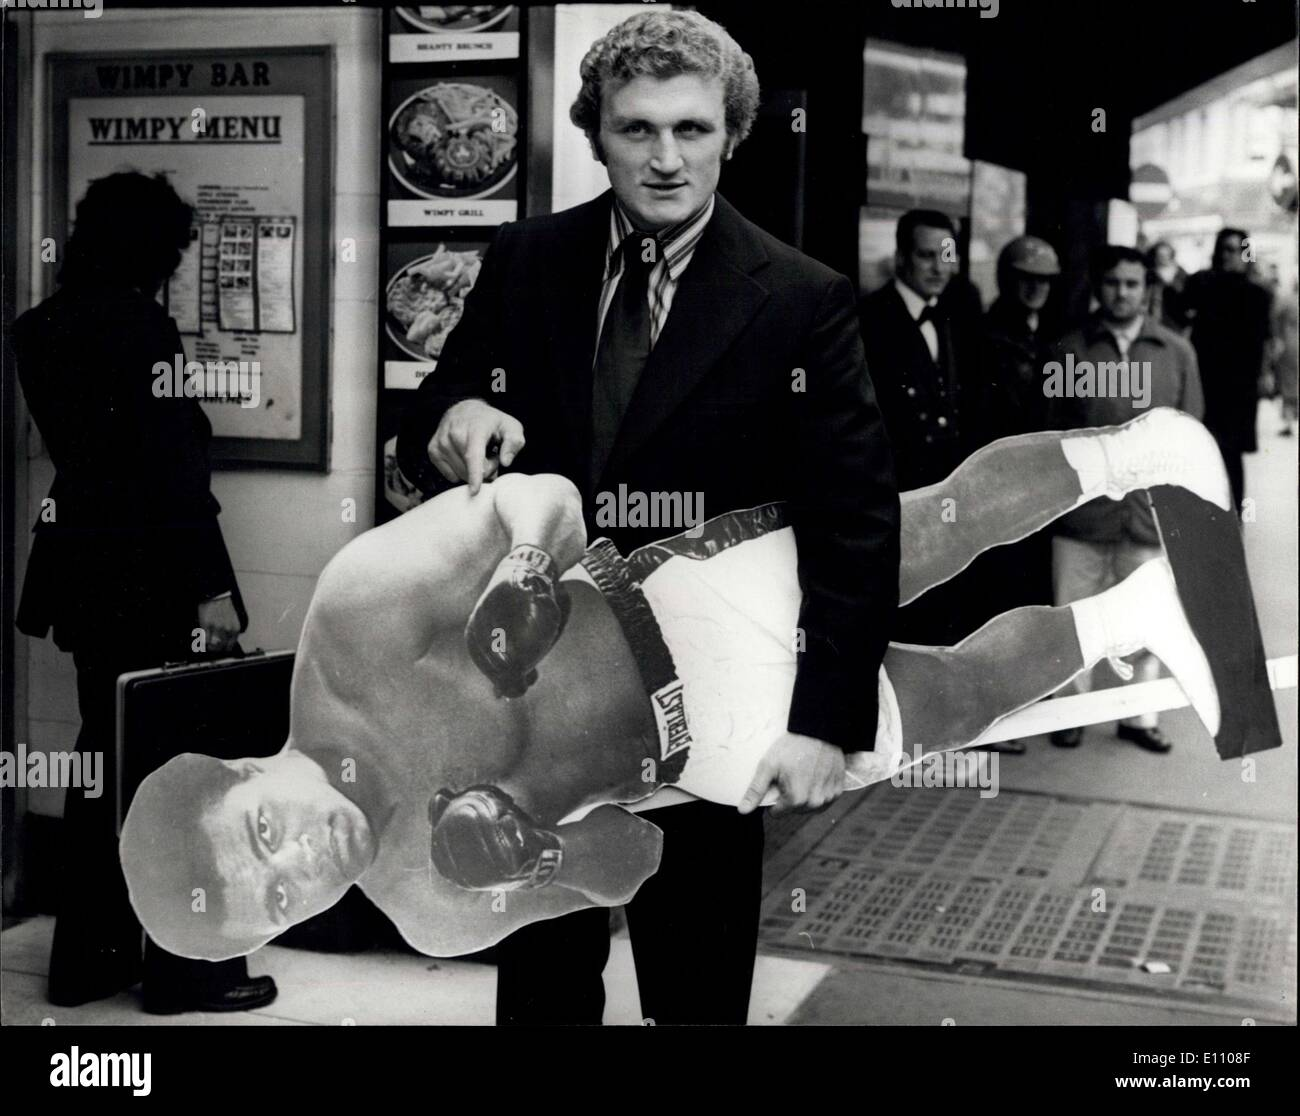 Nov. 05, 1974 - Reception for Jimmy Ellis and Joe Bugner.: Jimmy Ellis of America, former holder of the world heavyweight boxing title, and Joe Bugner, European title holder, who fight at Wembley next Tuesday, today attened a reception at the Sportman's Club in Tottenham Court Road, London. Photo shows Joe Bugner, who hopes that one day he'll carry off the world title, seen holding a life-size picture of world champion Muhammad Ali, outside the Sportmans Club today. - Stock Image